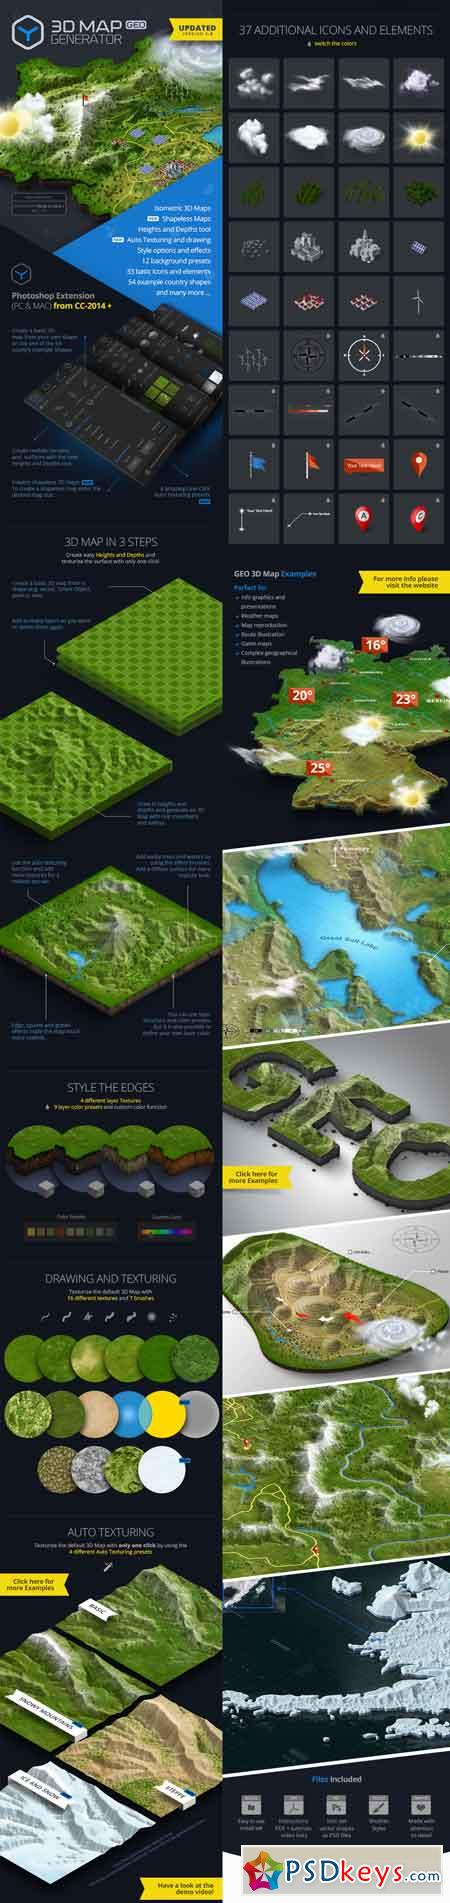 3D Map Generator - GEO 12451004 » Free Download Photoshop